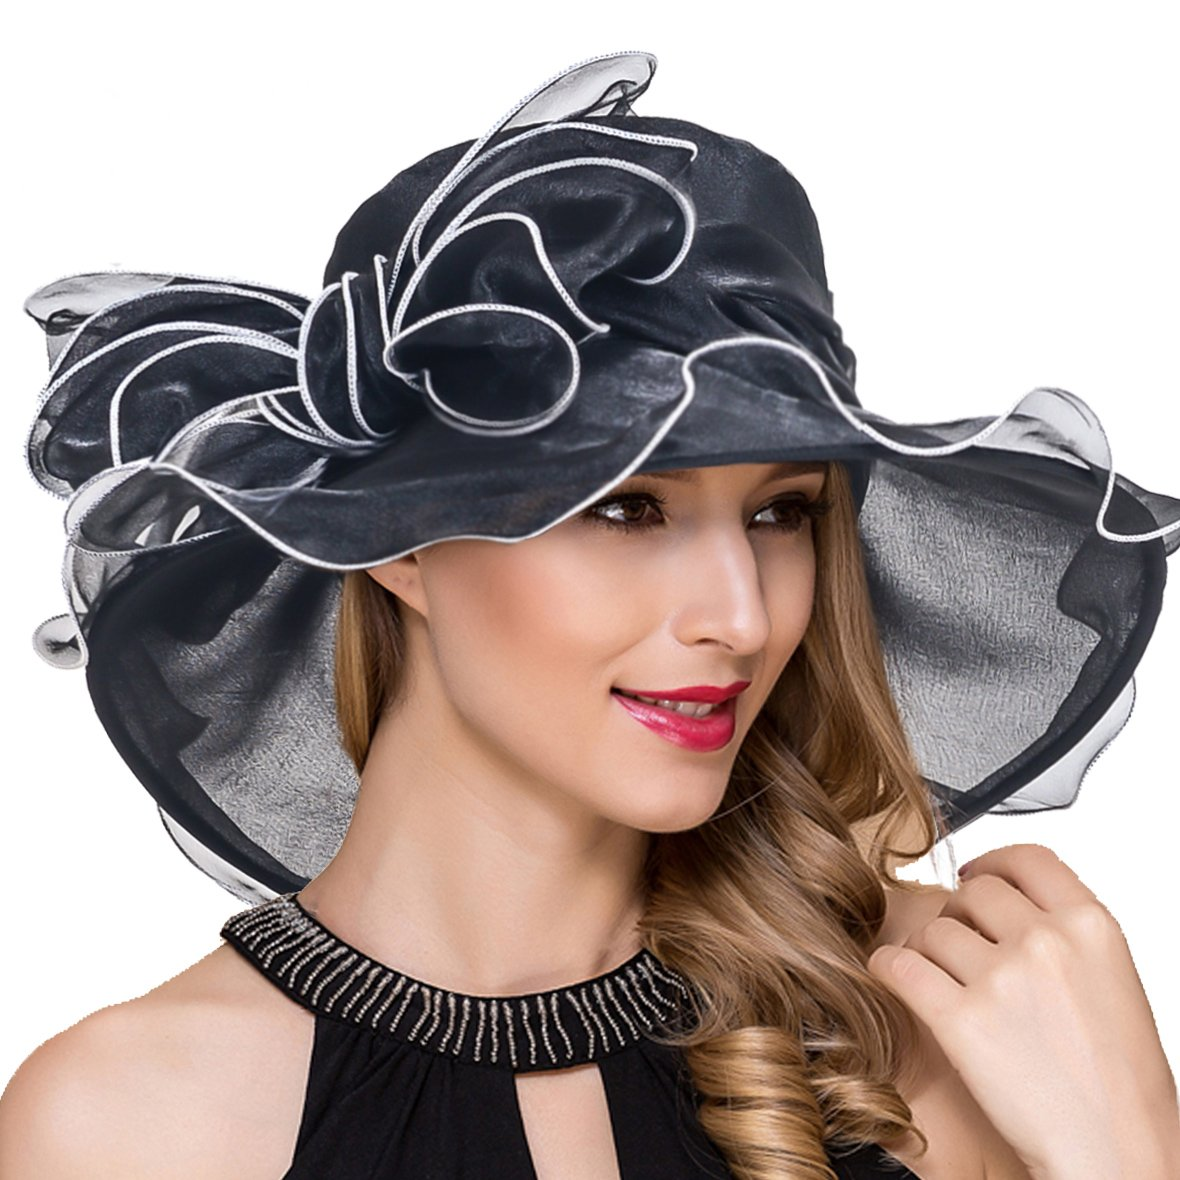 ba398f7b0a0 Kentucky Derby Hats for Women Organza Fascinator Church Tea Party Dress  Wedding Hat Black at Amazon Women s Clothing store